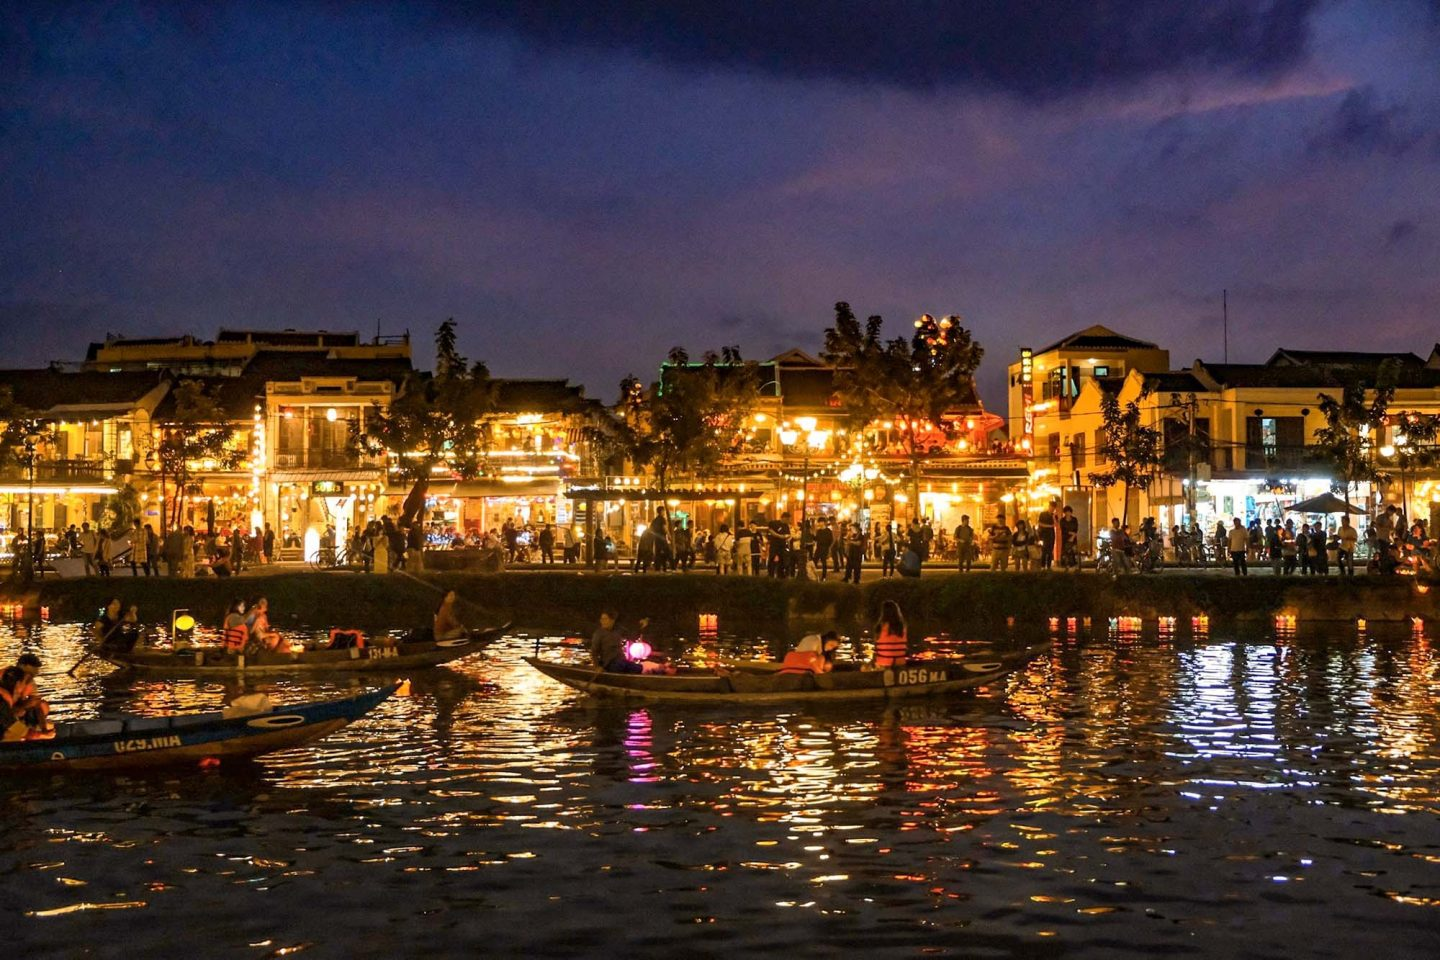 hoi an riverside lit up by lantern festival